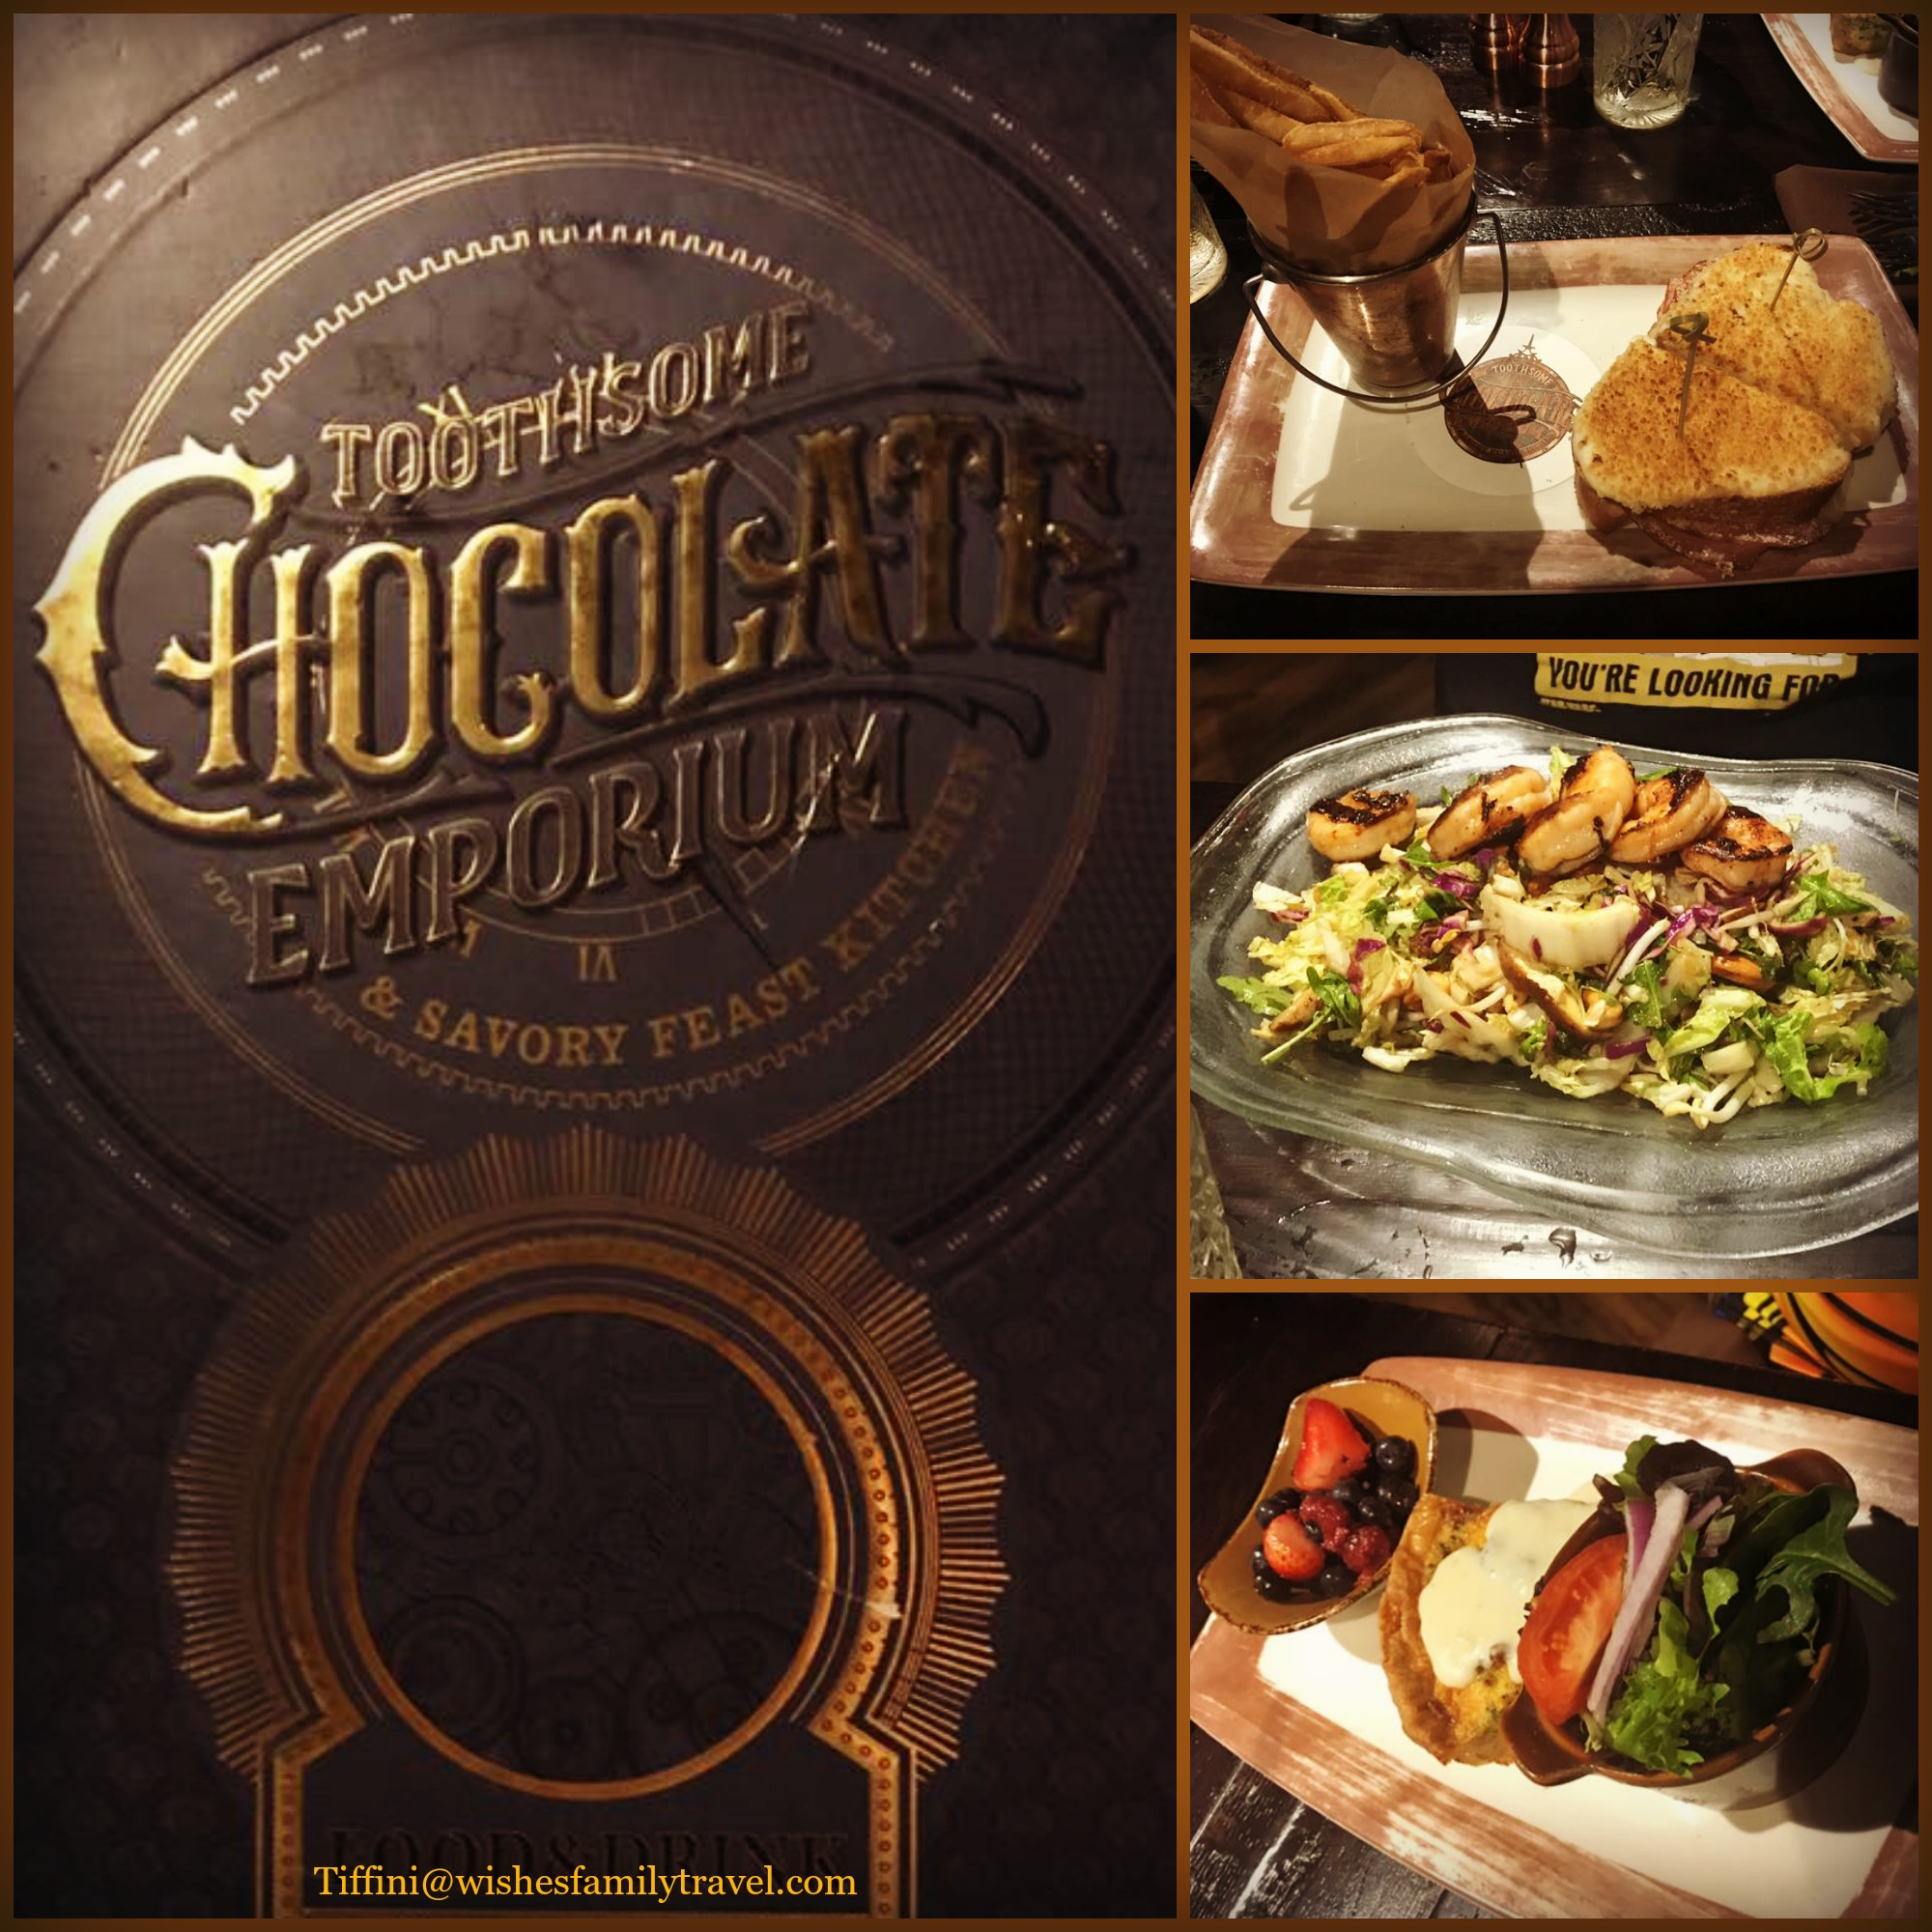 Truly_Tasty_Touches_at_Toothsome_photo_of_menu_and_food